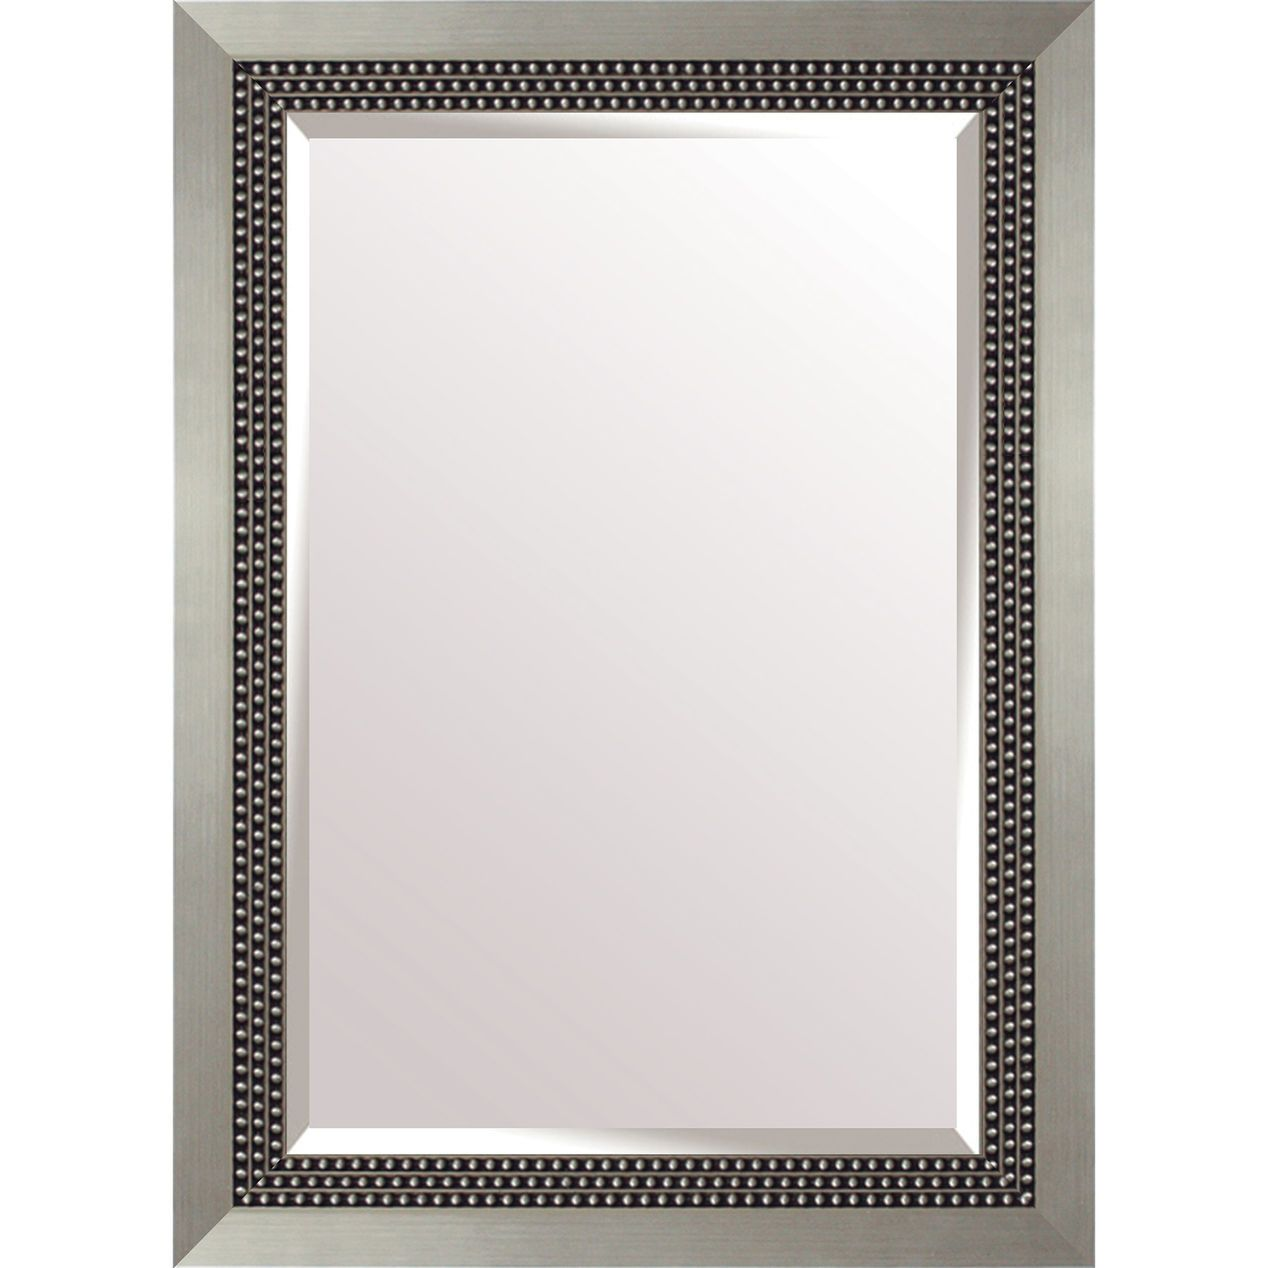 30x36 Rectangle Plastic Triple Beads Silver Wall Mirror Silver Wall Mirror Mirror Mirror Wall [ 1268 x 1268 Pixel ]